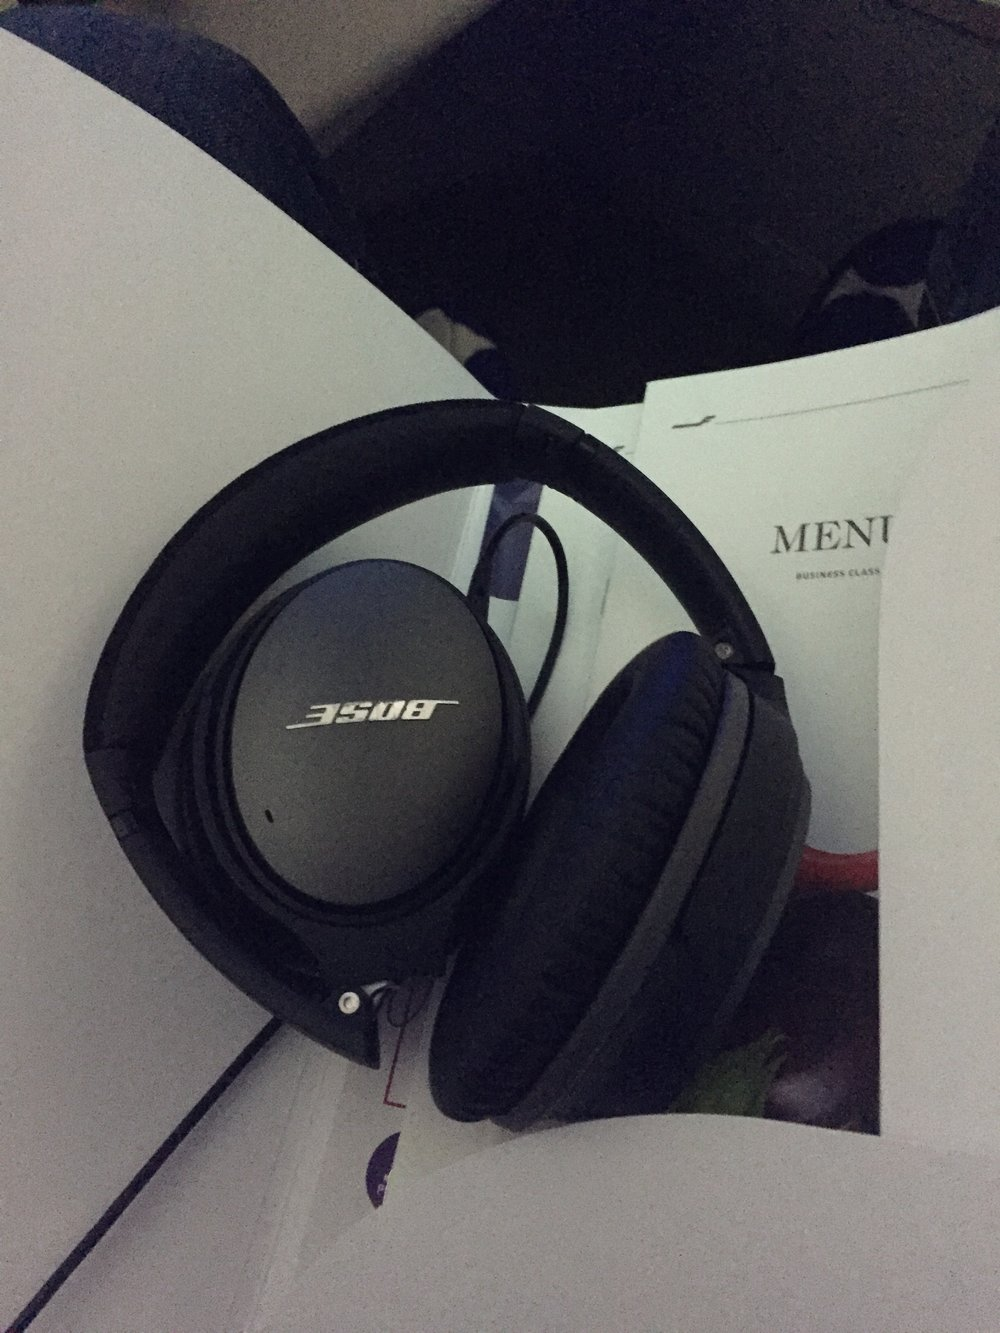 This rather robust set of Bose headphones was provided by Finnair too - great for cancelling cabin noise